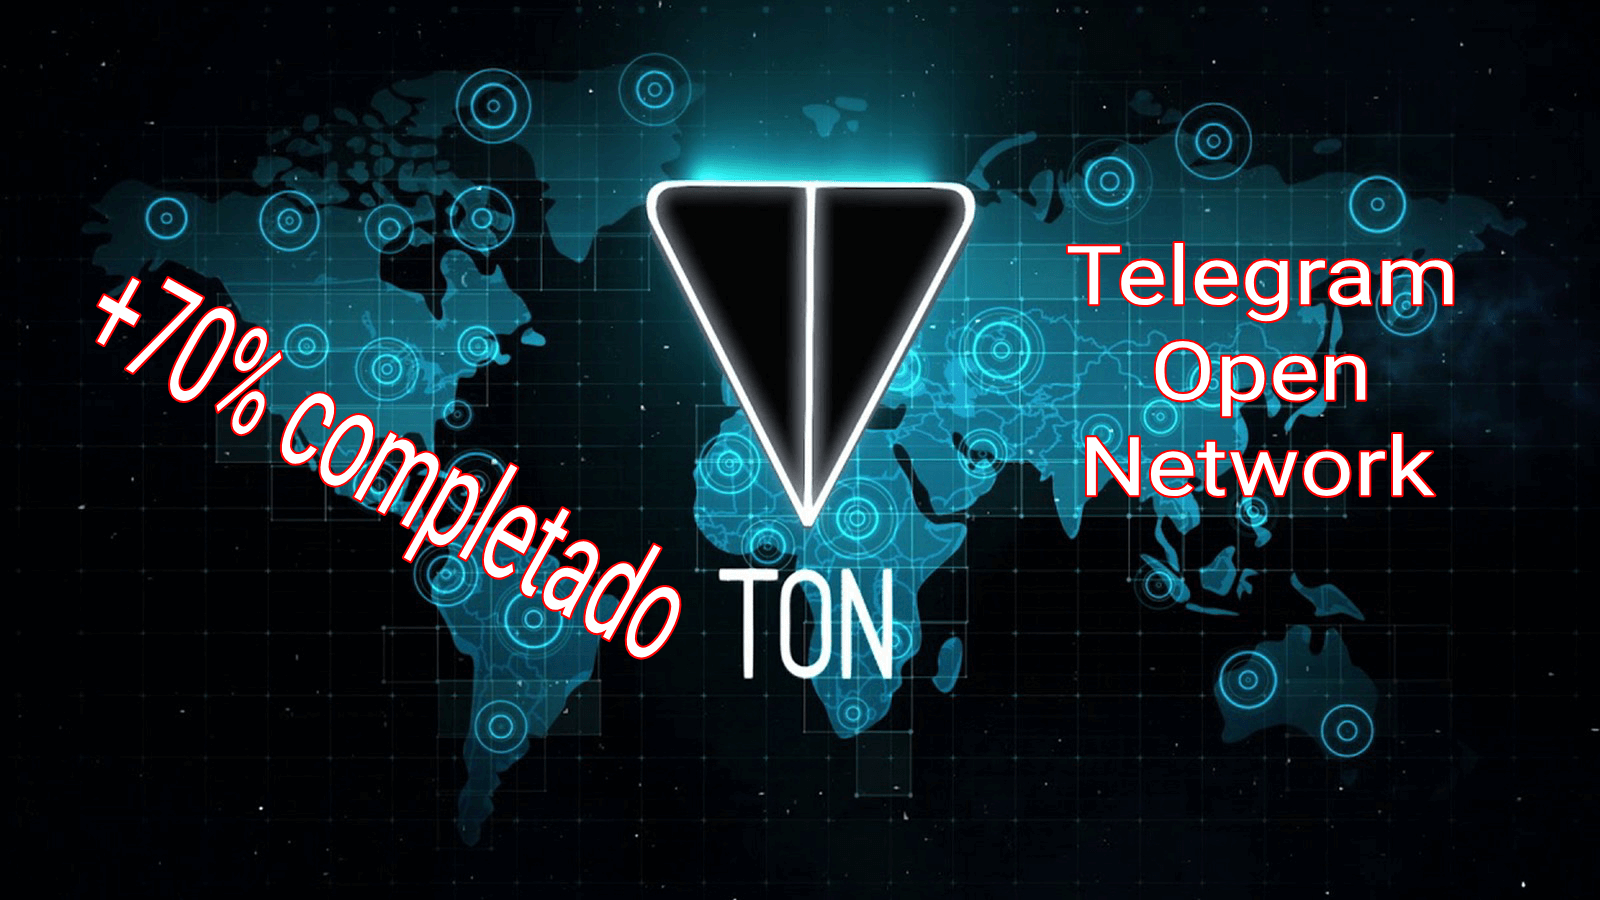 Nuevos documentos y información sobre  Telegram Open Network